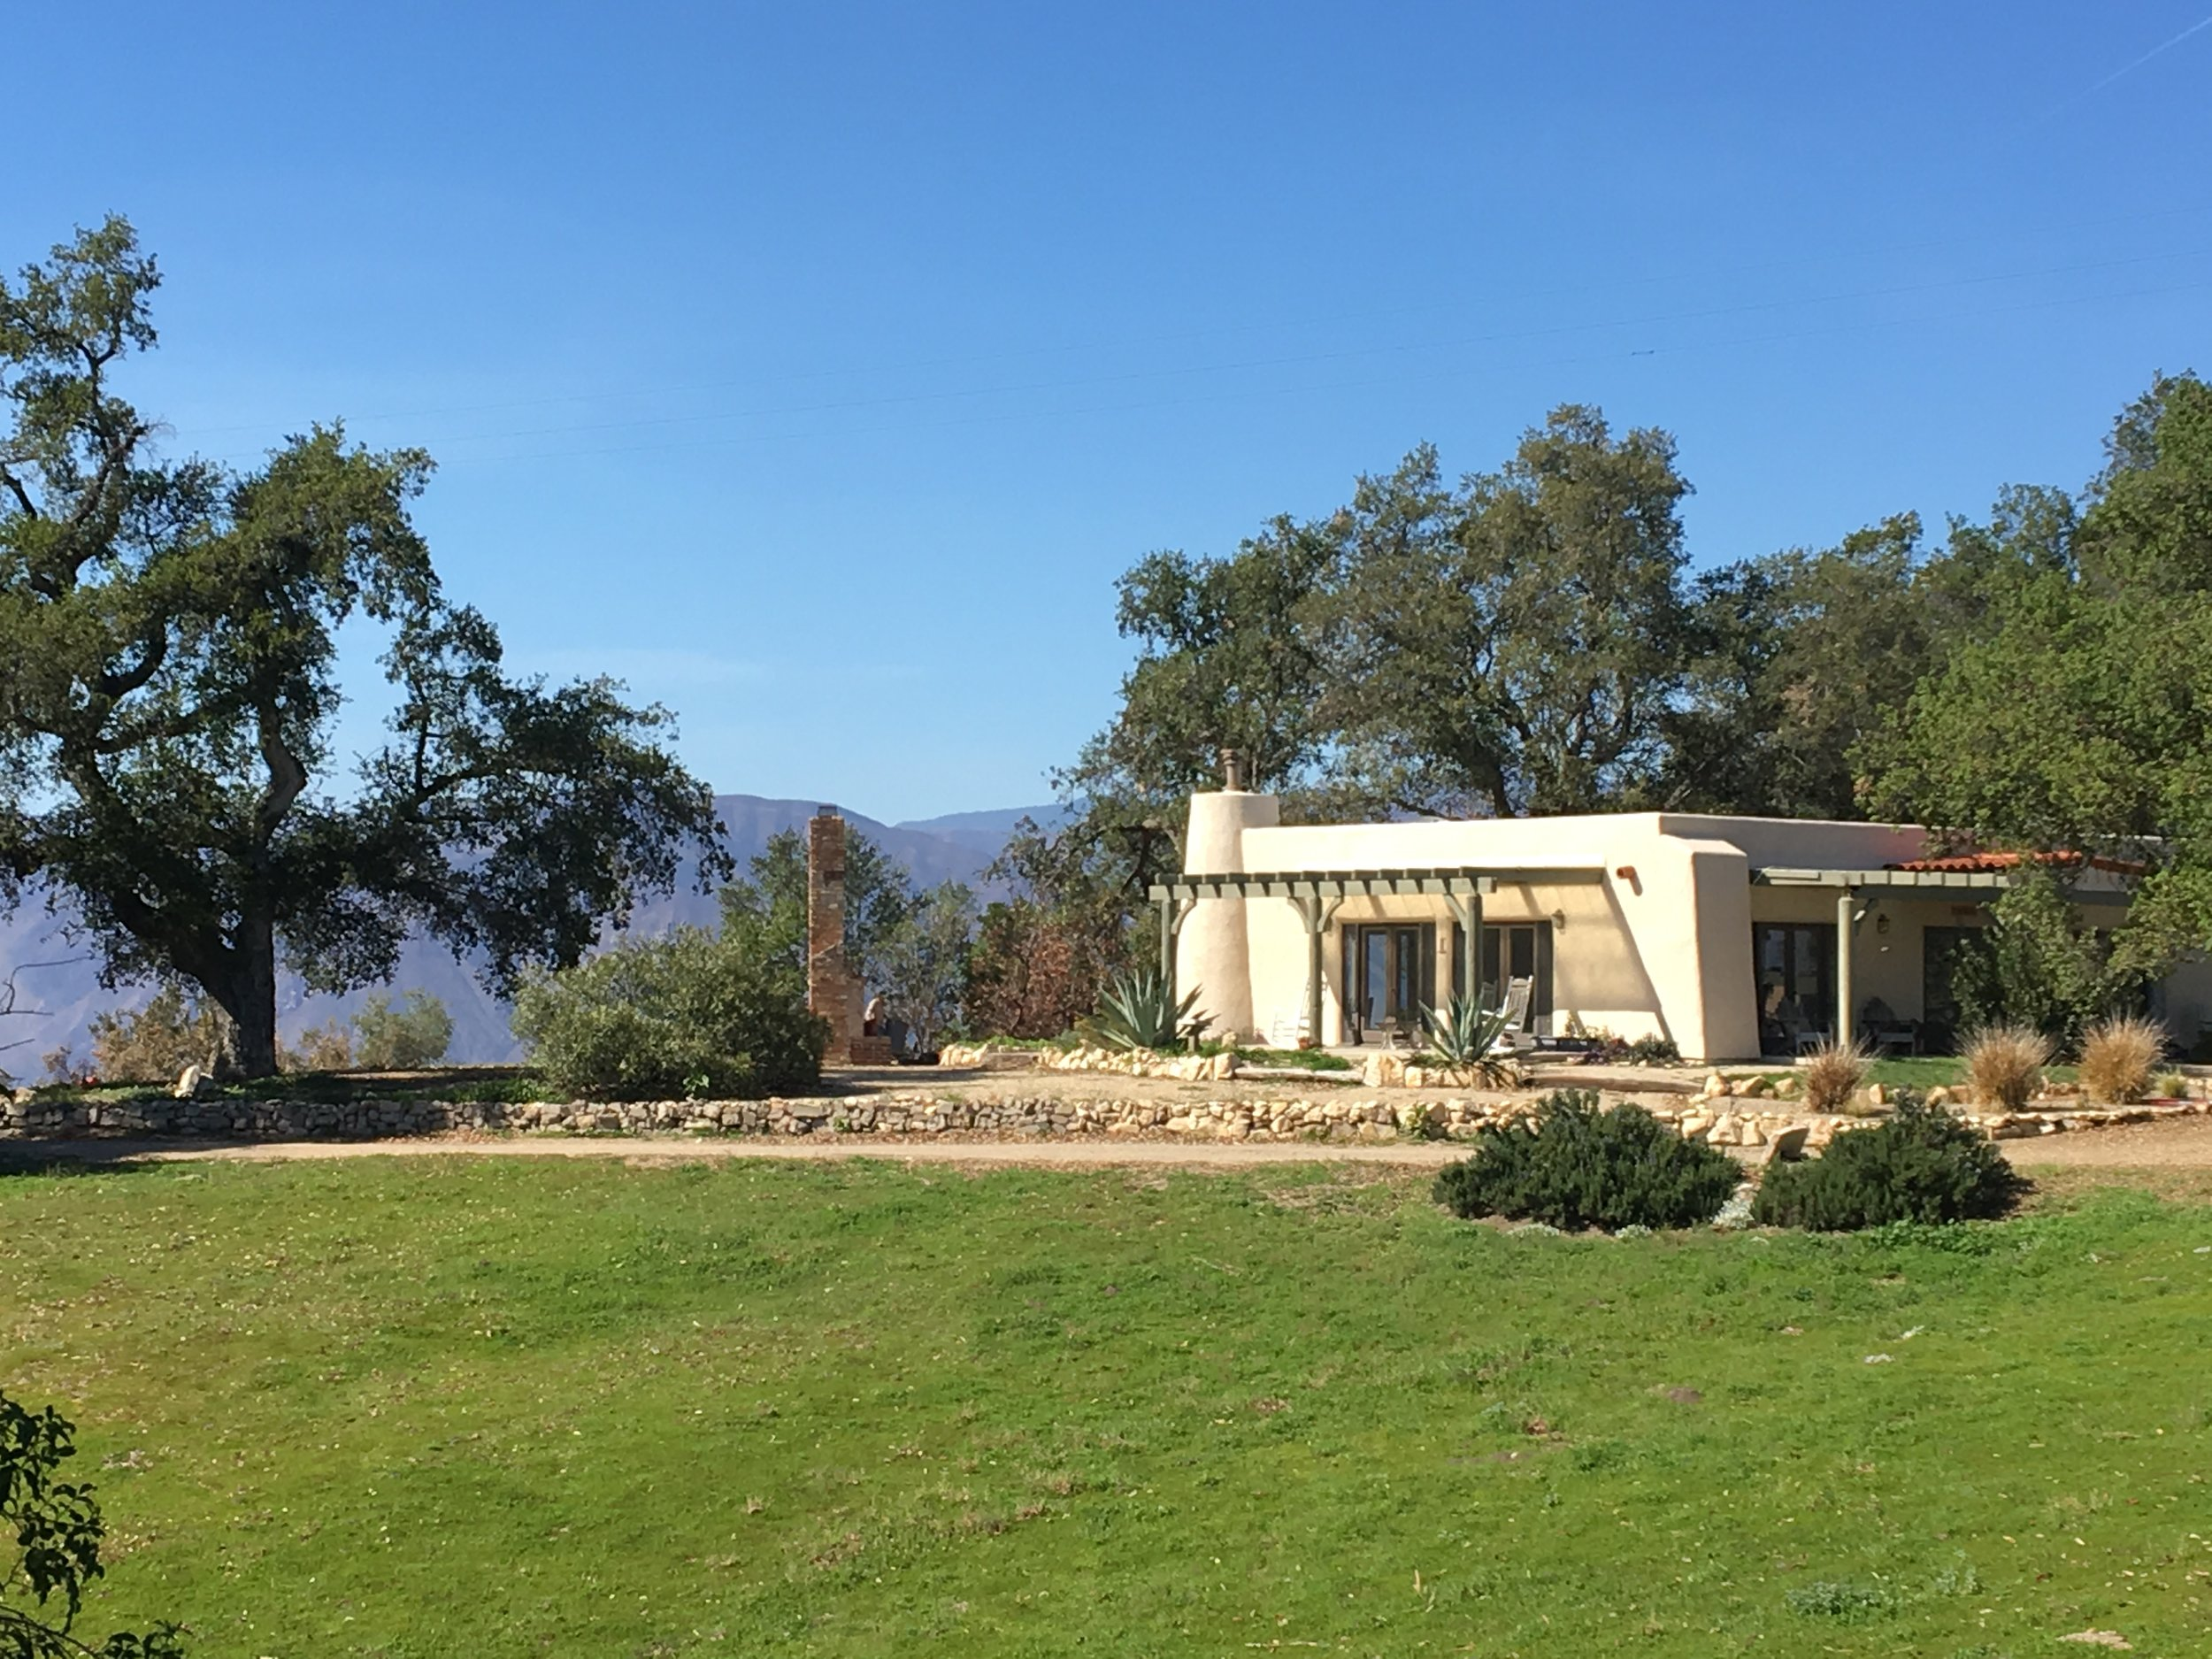 THE VIEW to the Ojai Valley is unobstructed, opening up the area by Baba's Fireplace. (Photo: Cassandra Bramucci, March 30, 2018)